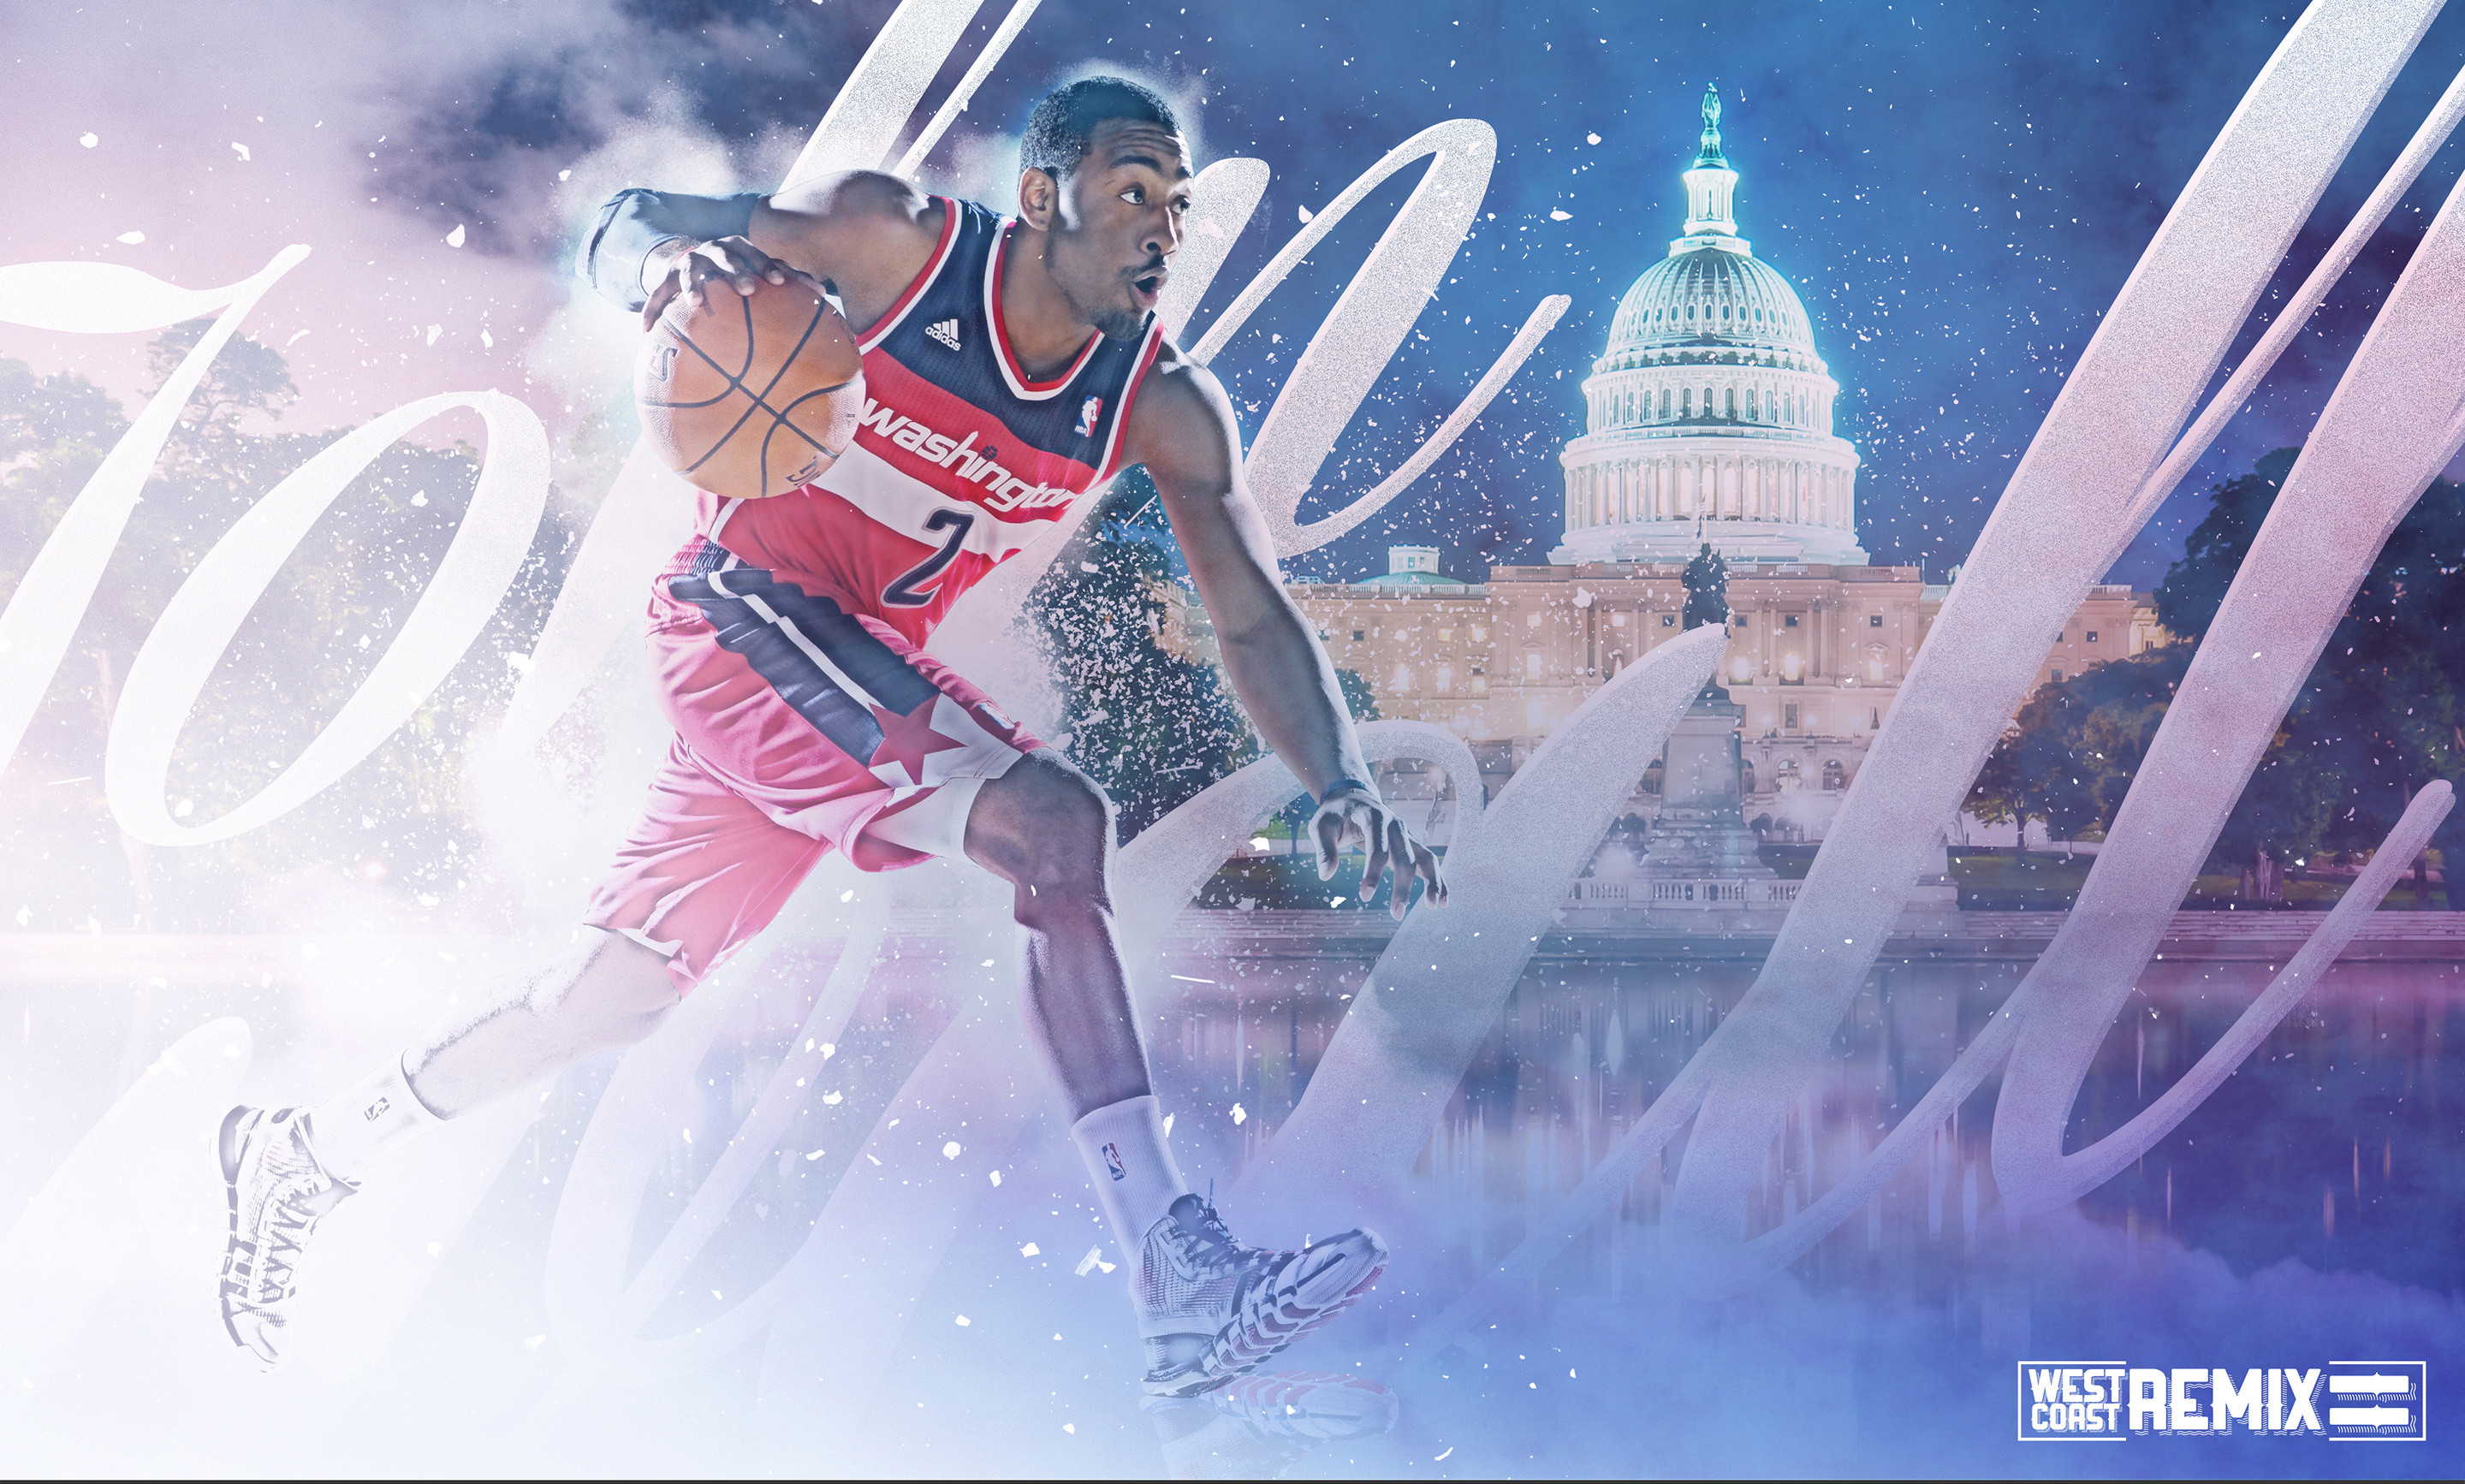 john wall backgrounds desktop hd free amazing cool background images mac  windows 10 tablet 2880×1734